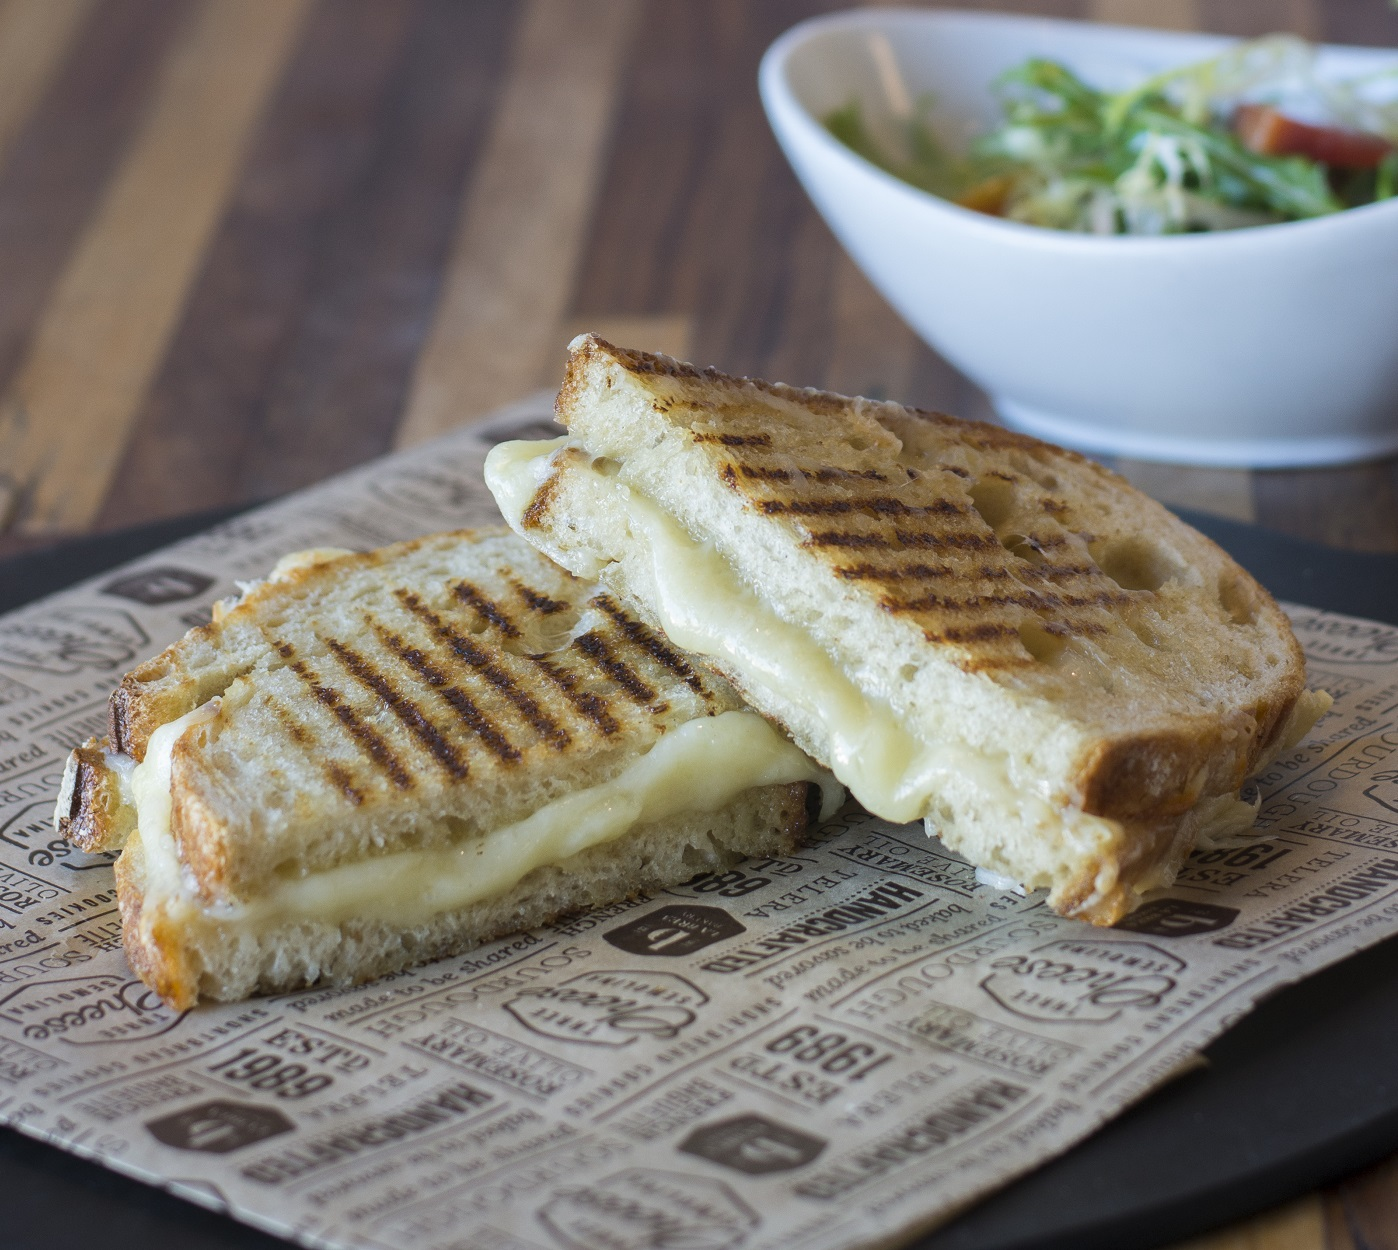 La Brea Bakery Cafe's Classic Grilled Cheese